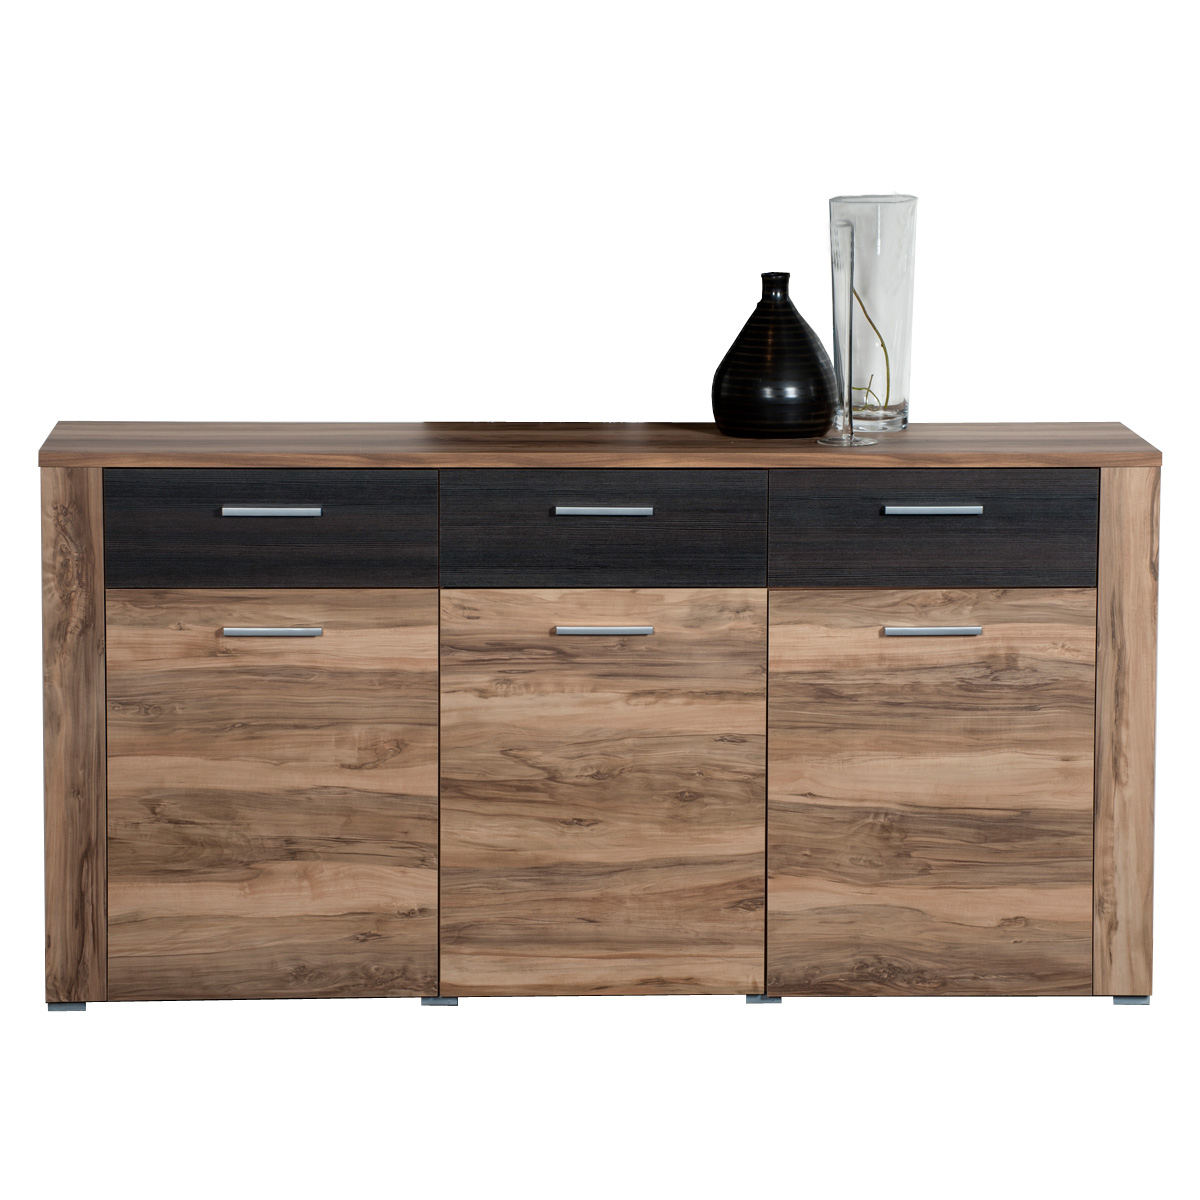 Sideboard kandy kommode nussbaum touchwood neu ebay for Sideboard kommode